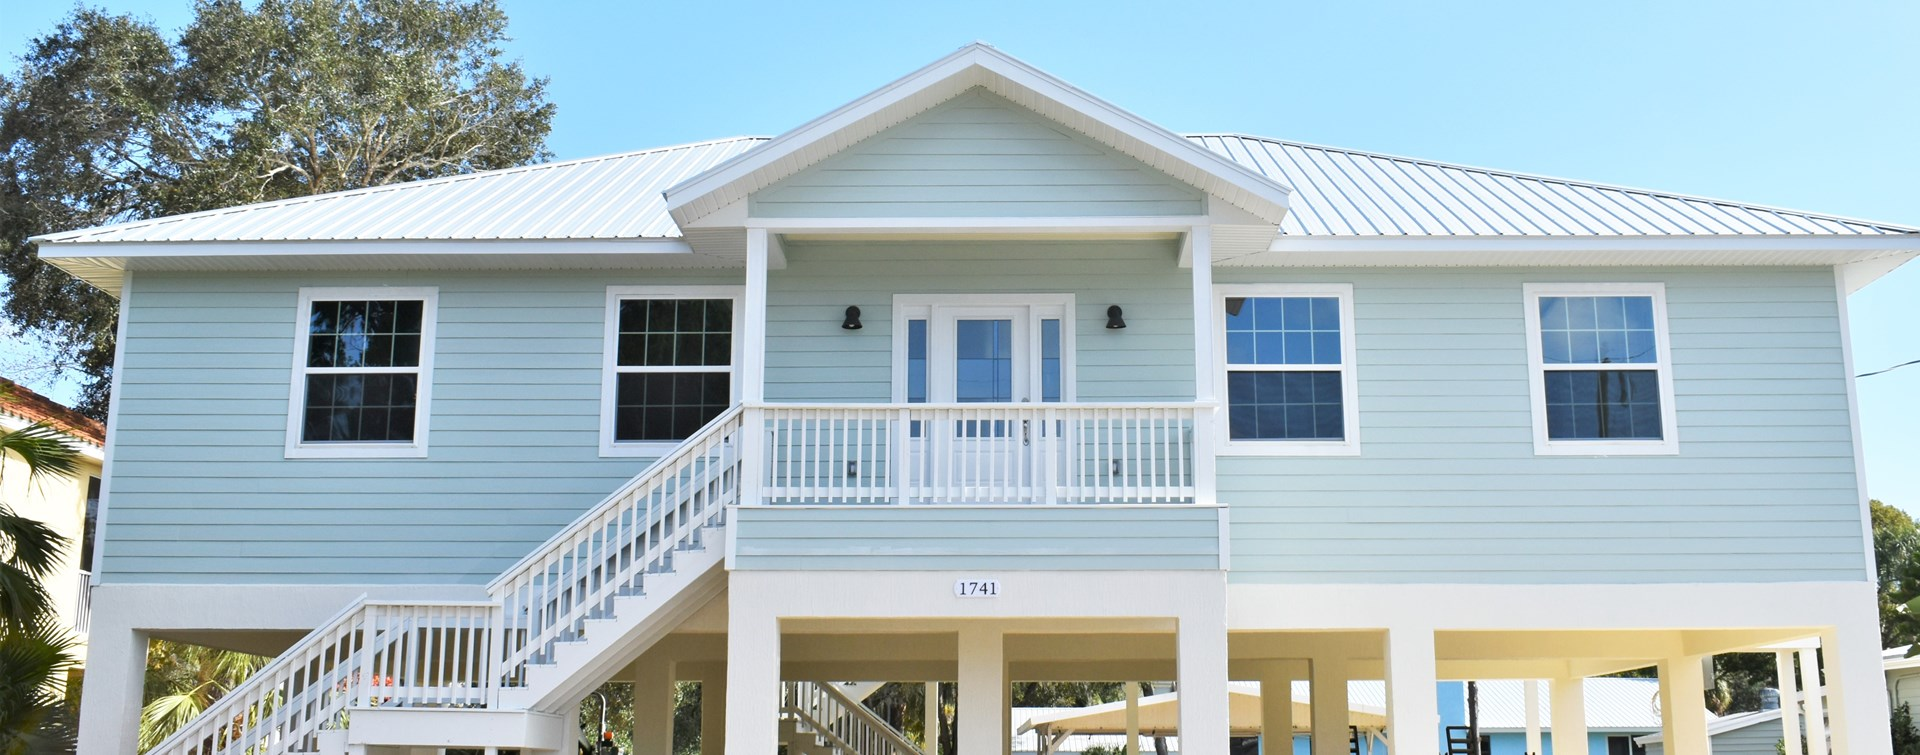 RIVER FRONT HOME FOR SALE CRYSTAL RIVER, FLORIDA